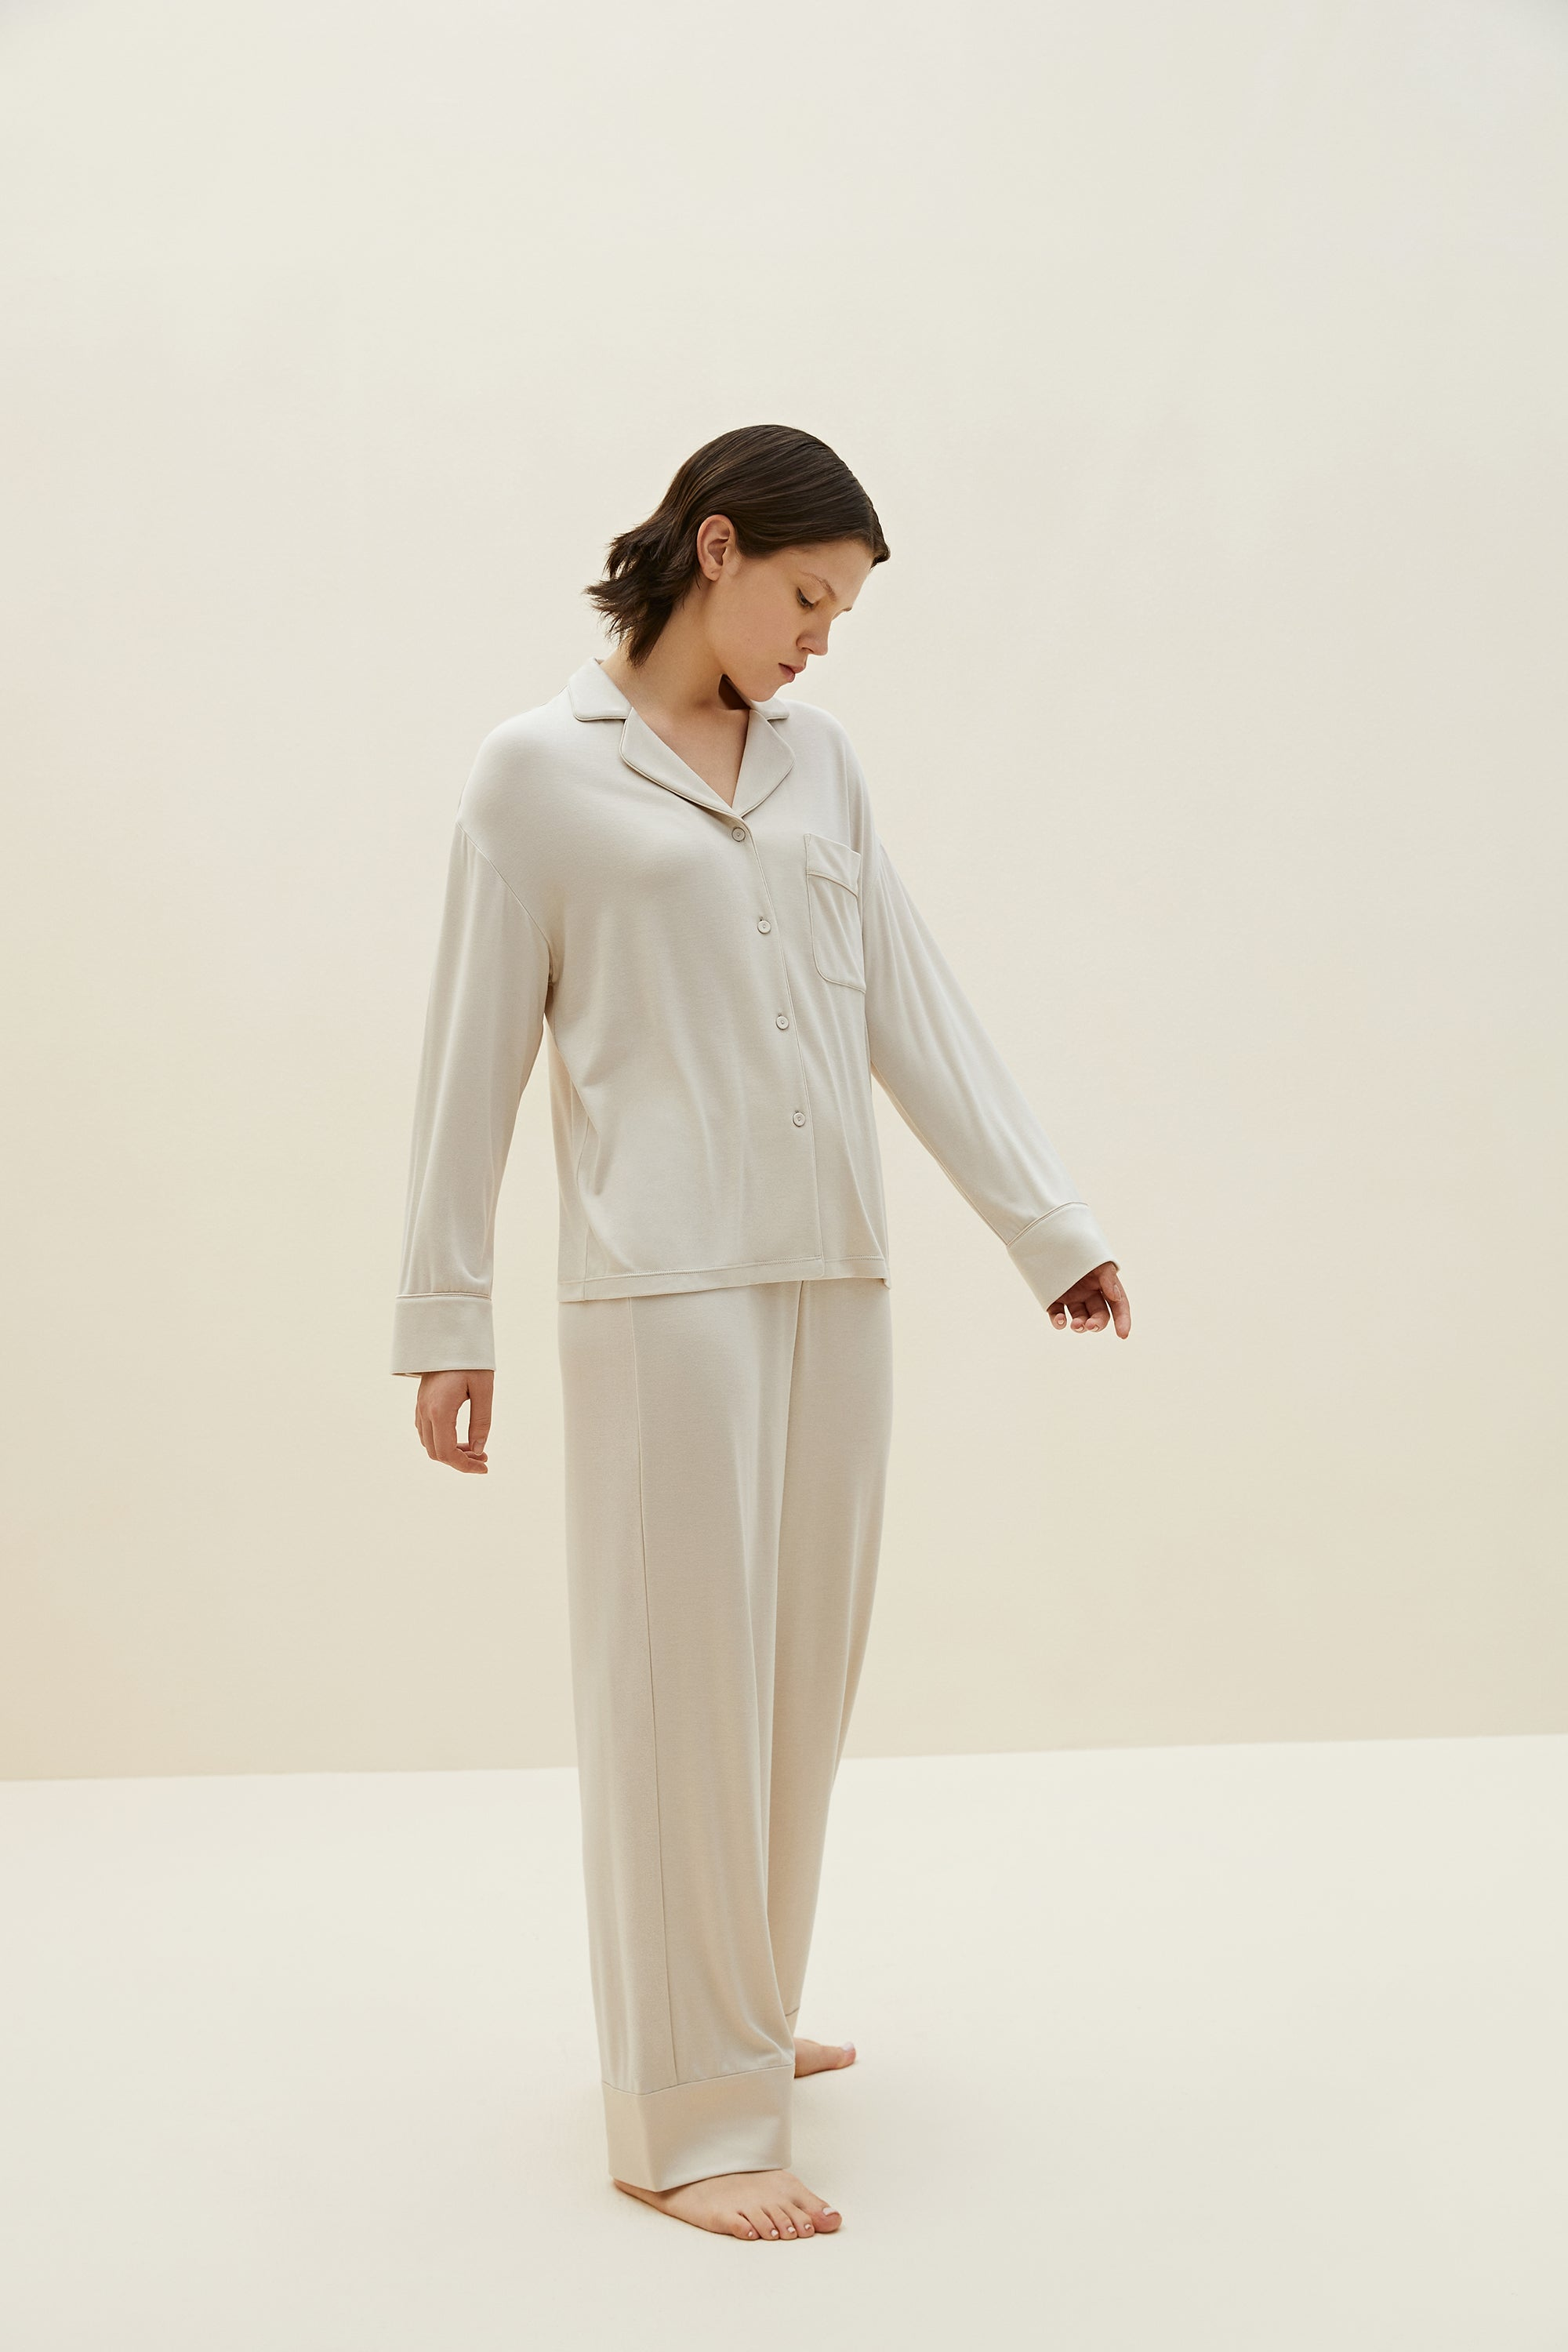 Model wearing NEIWAI's Classic Cozy Button-Up Pajama Top in Light Gray.